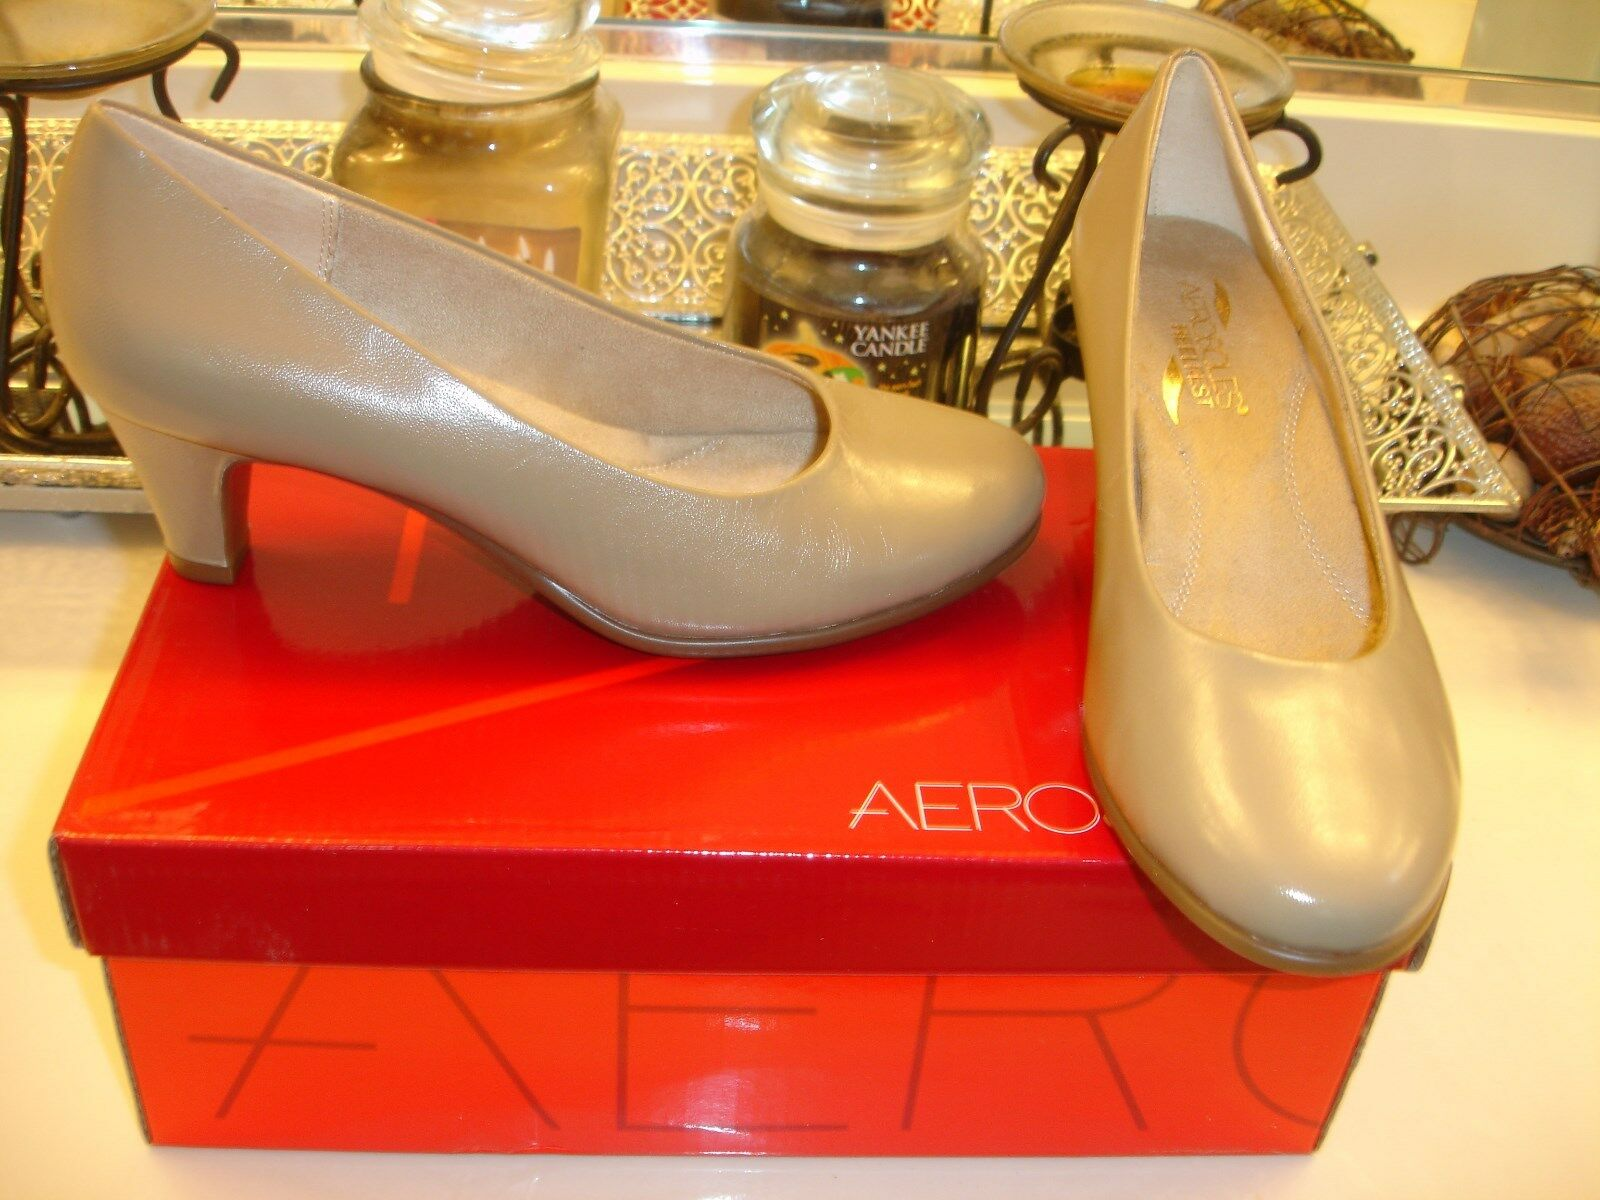 Aerosoles Tan rouge Hot Heels Memory Foam Comfort Conservative Taupe  6.5 NWB  89